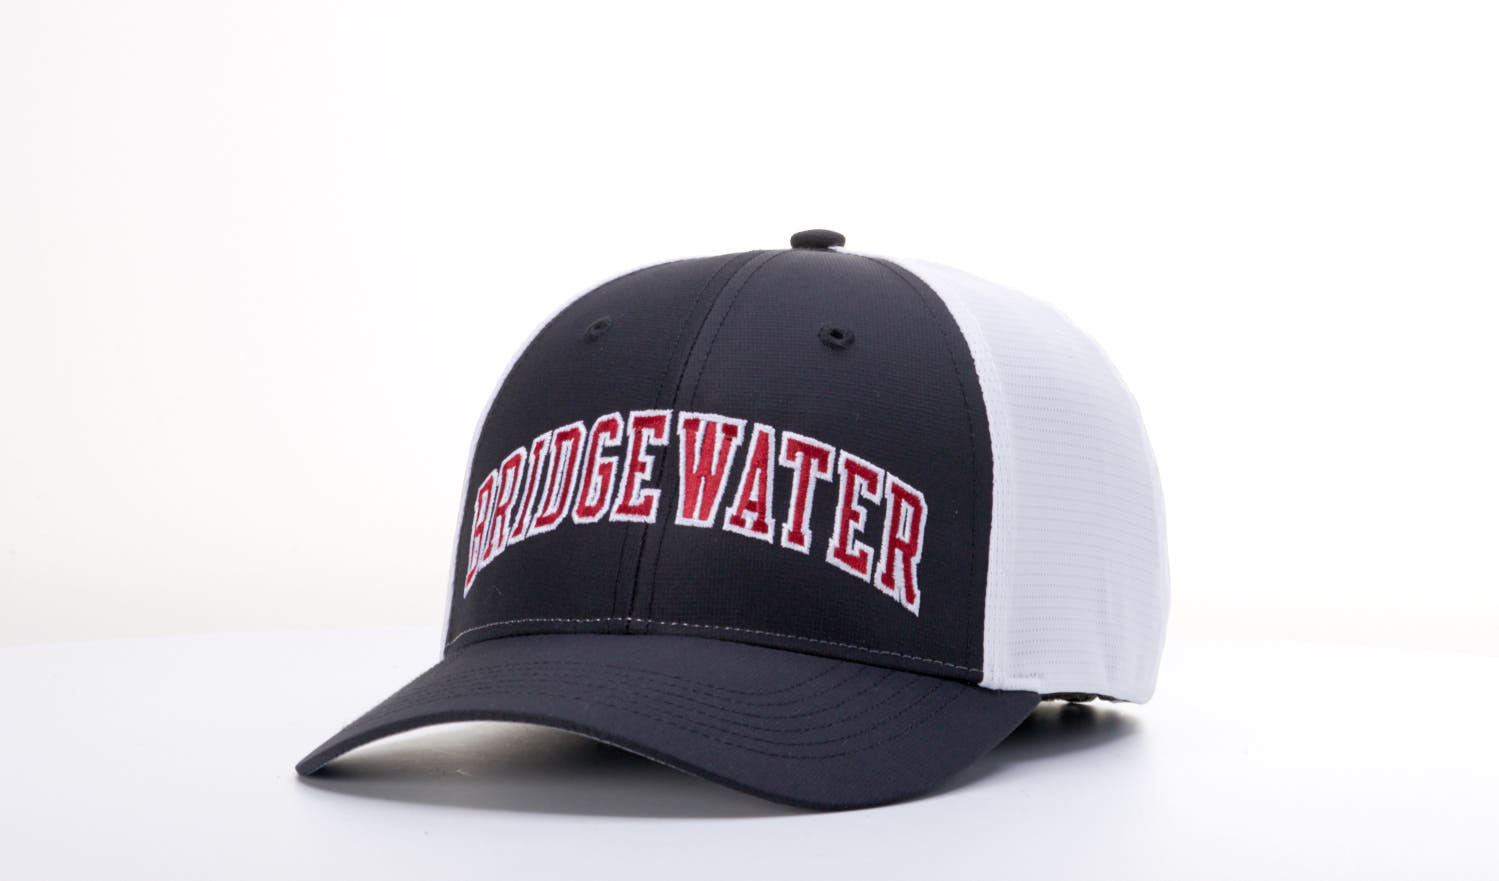 Richardson Bridgewater Black Moisture Management Hat